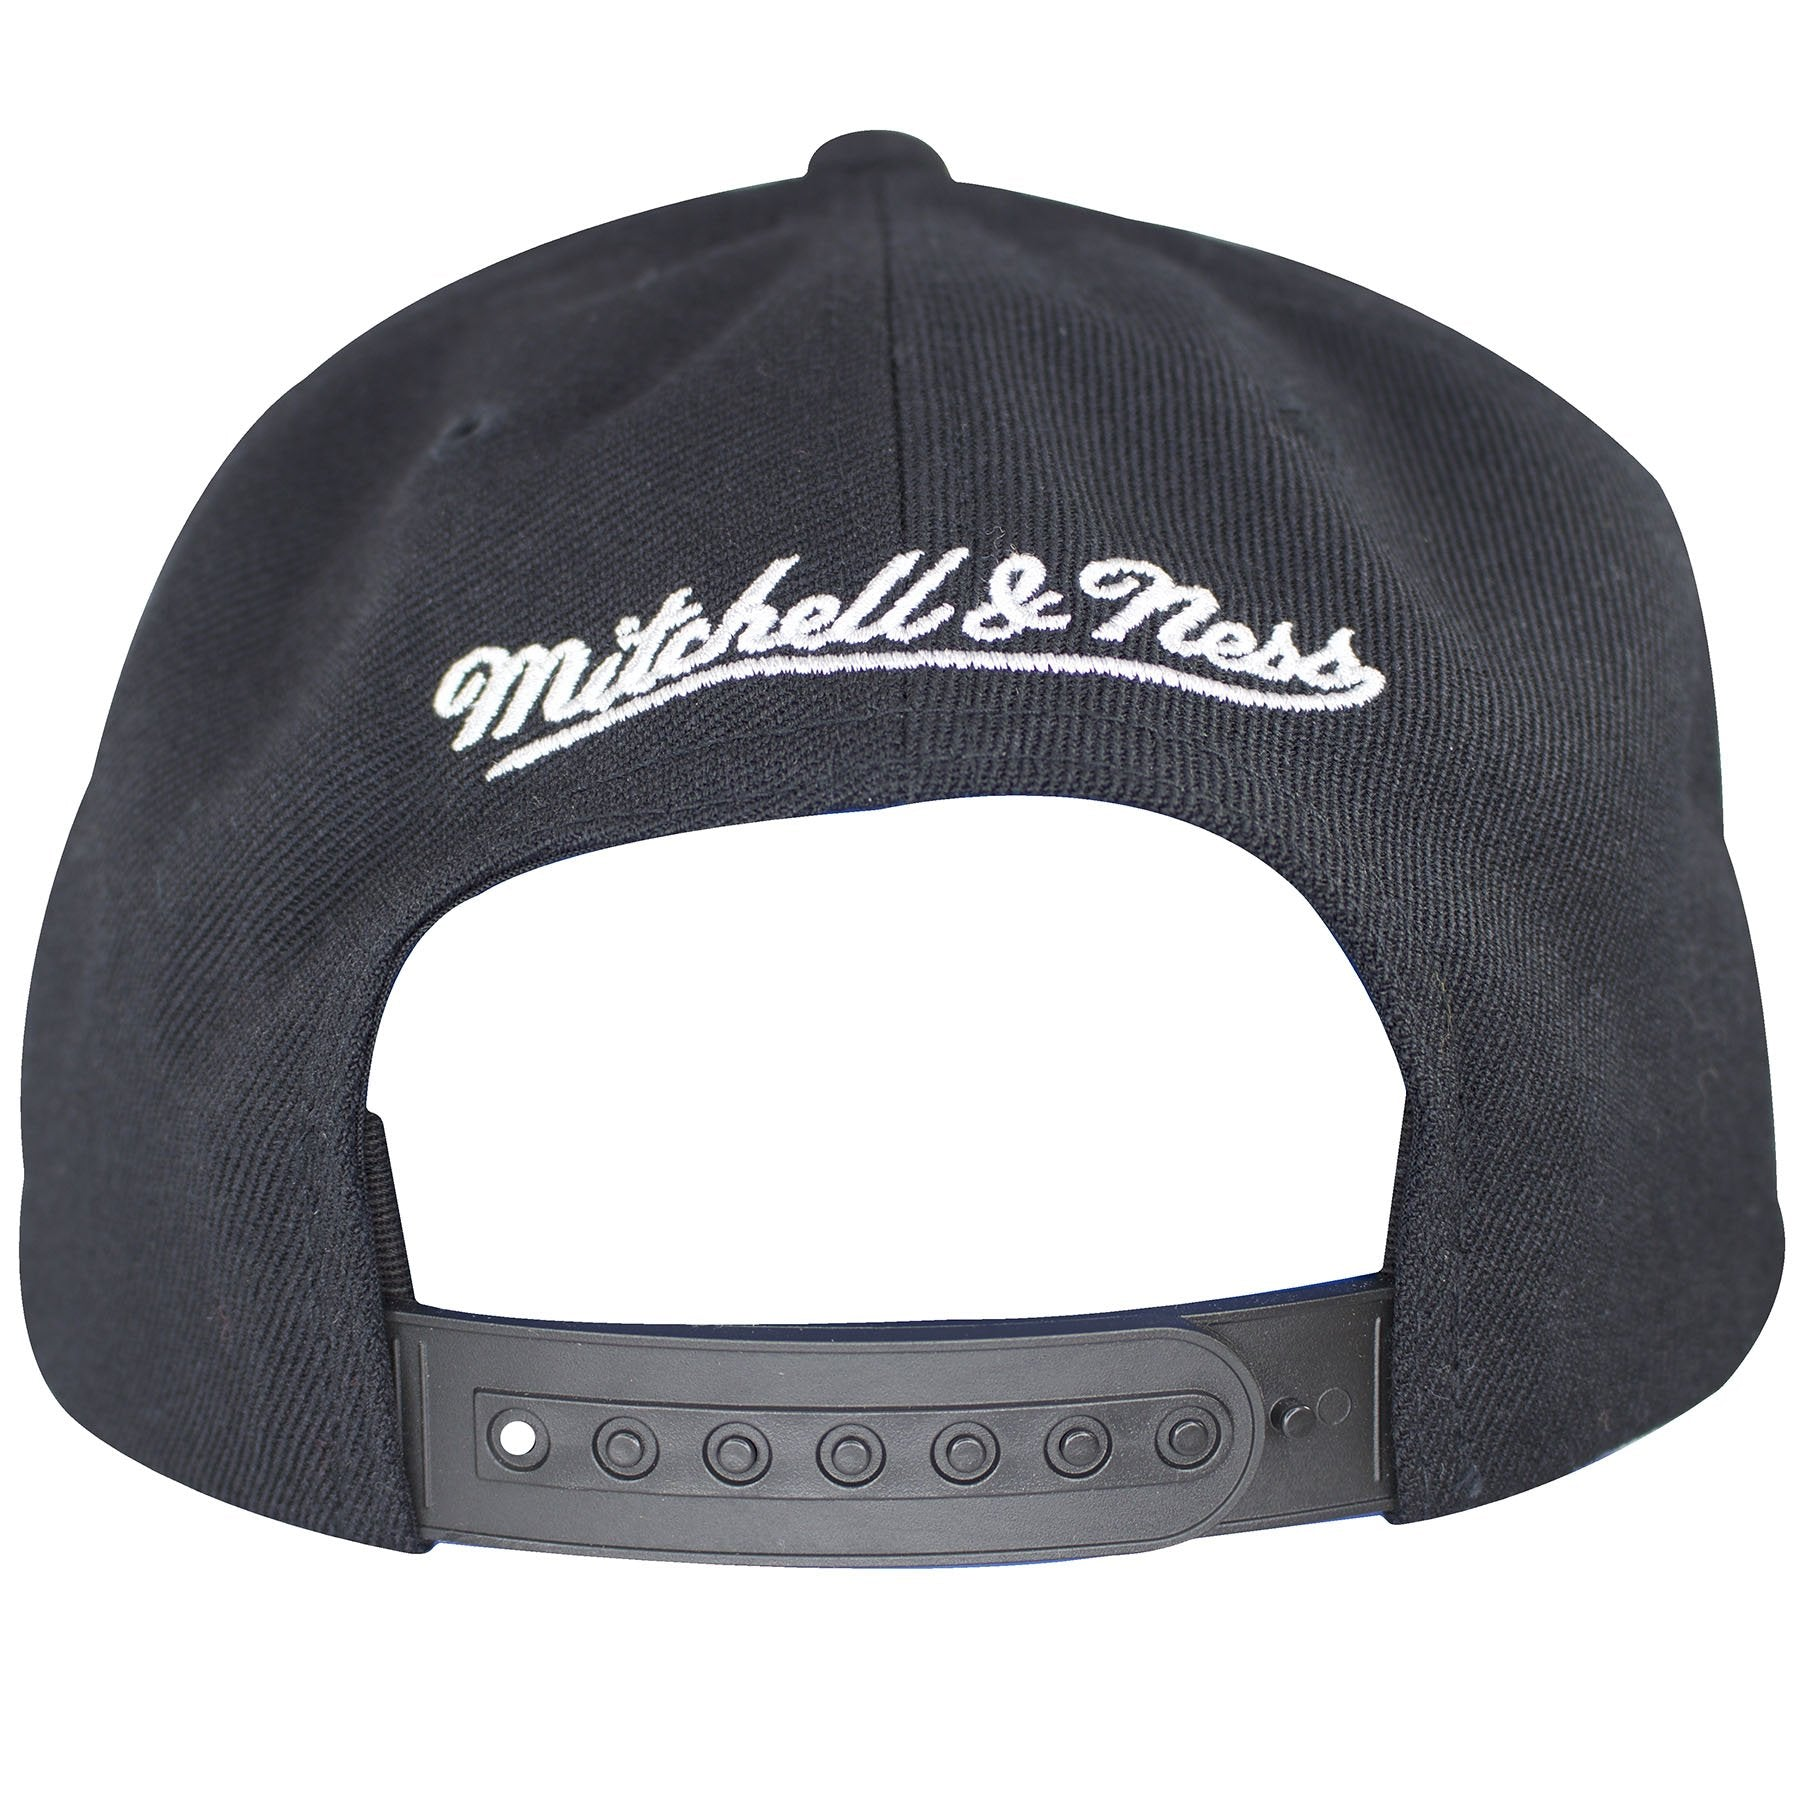 buy popular 812a6 80726 ... on the back of the los angeles kings vintage classic snapback hat is  the mitchell and ...